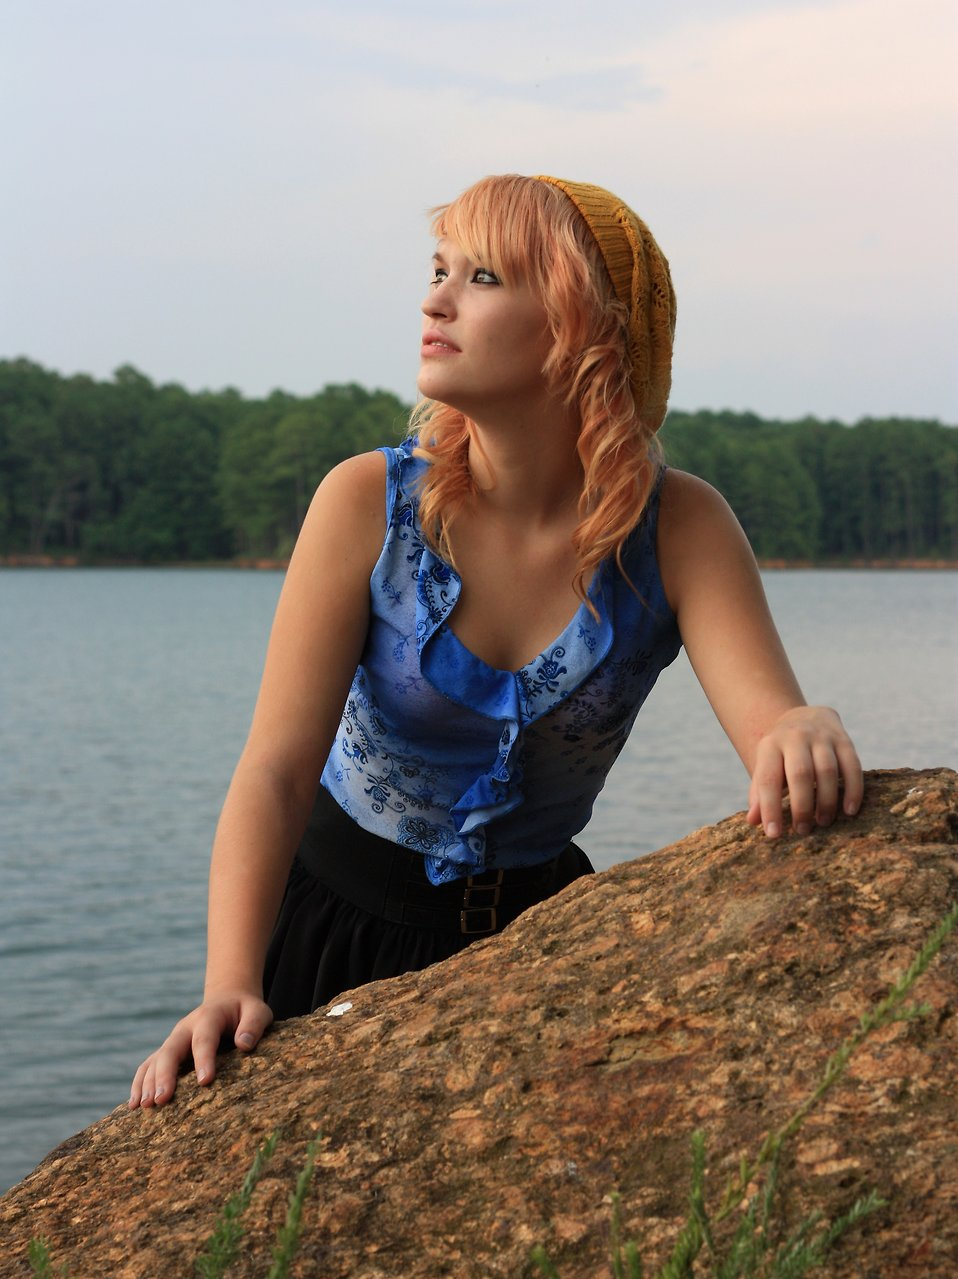 A beautiful young woman posing by a lake : Free Stock Photo